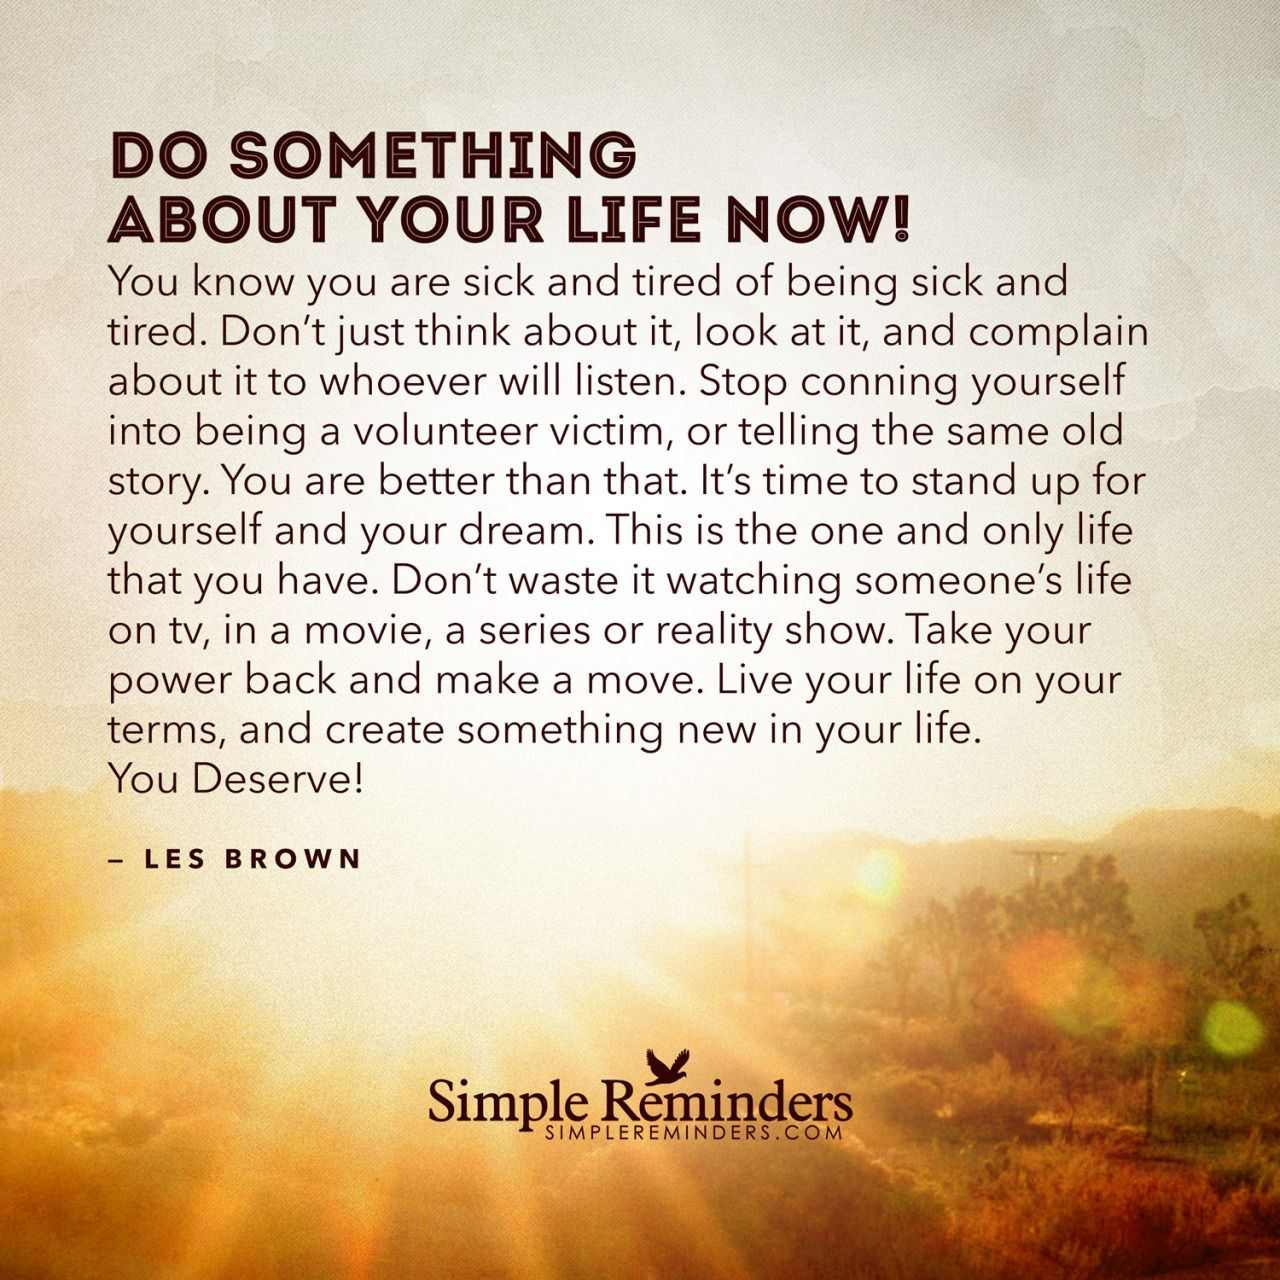 Les Brown Quotes Do Something About Your Life Nowyou Know You Are Sick And Tired